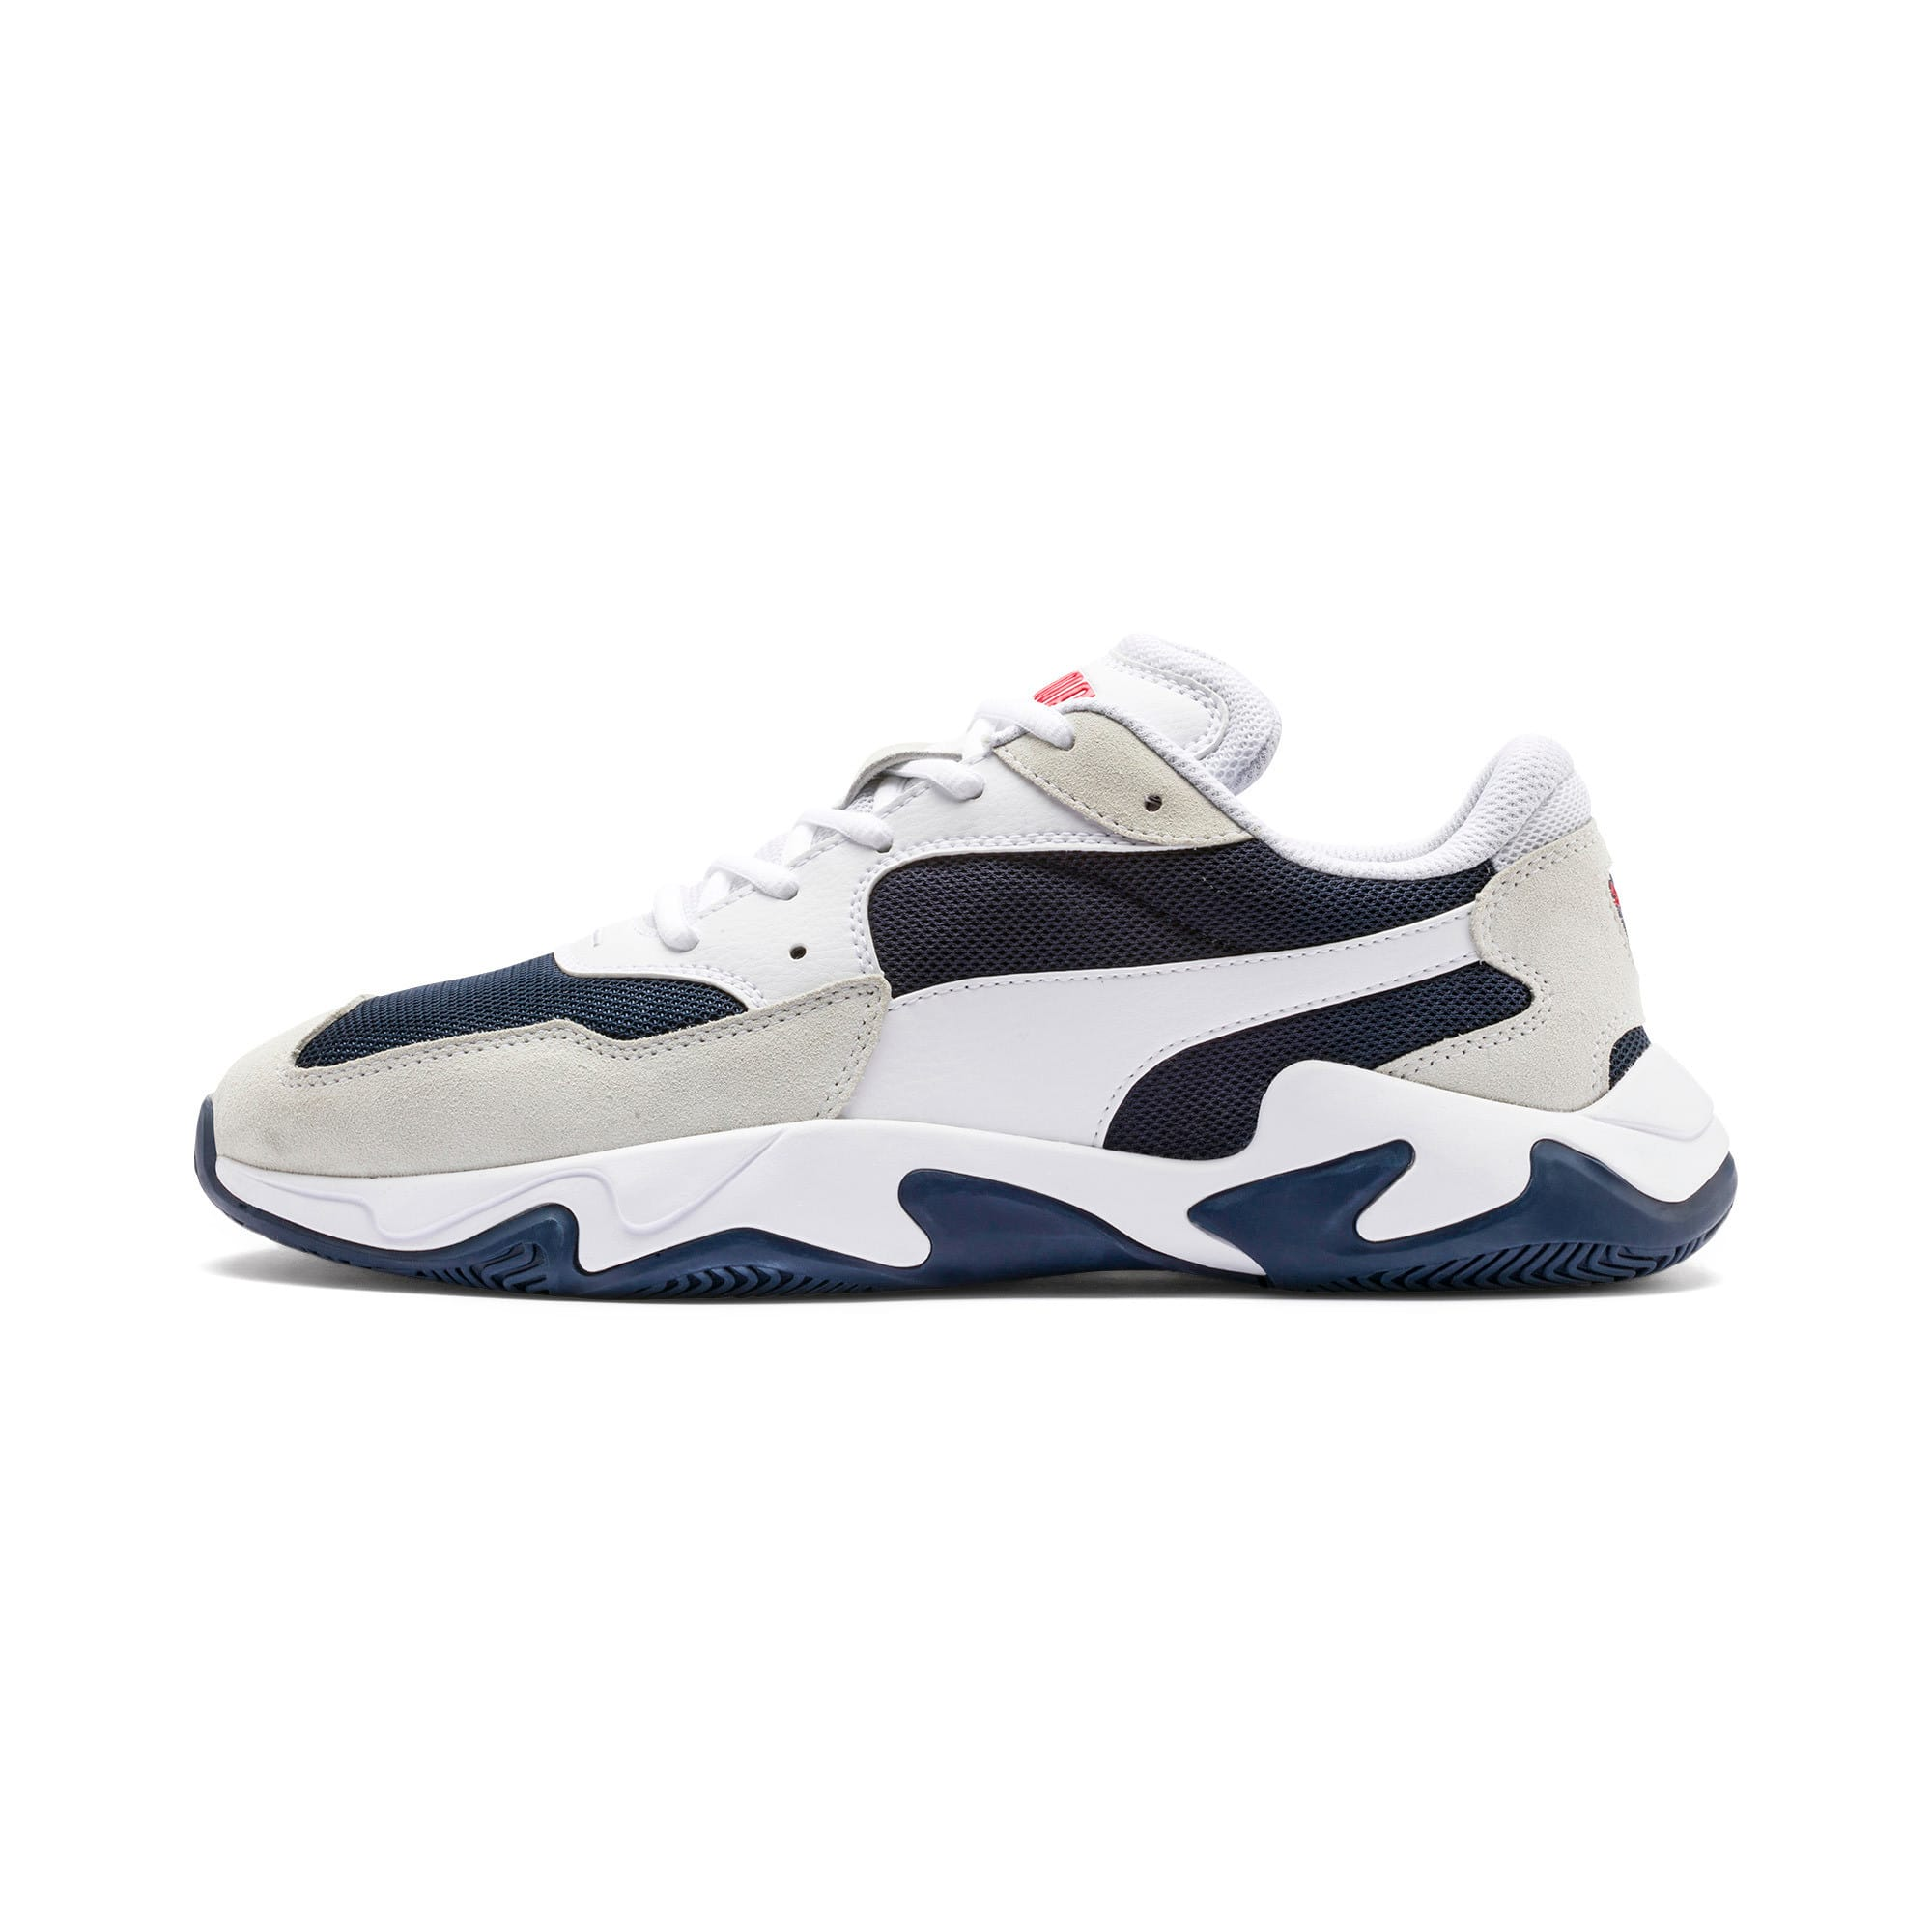 Thumbnail 1 of Storm Adrenaline Trainers, Puma White-Peacoat, medium